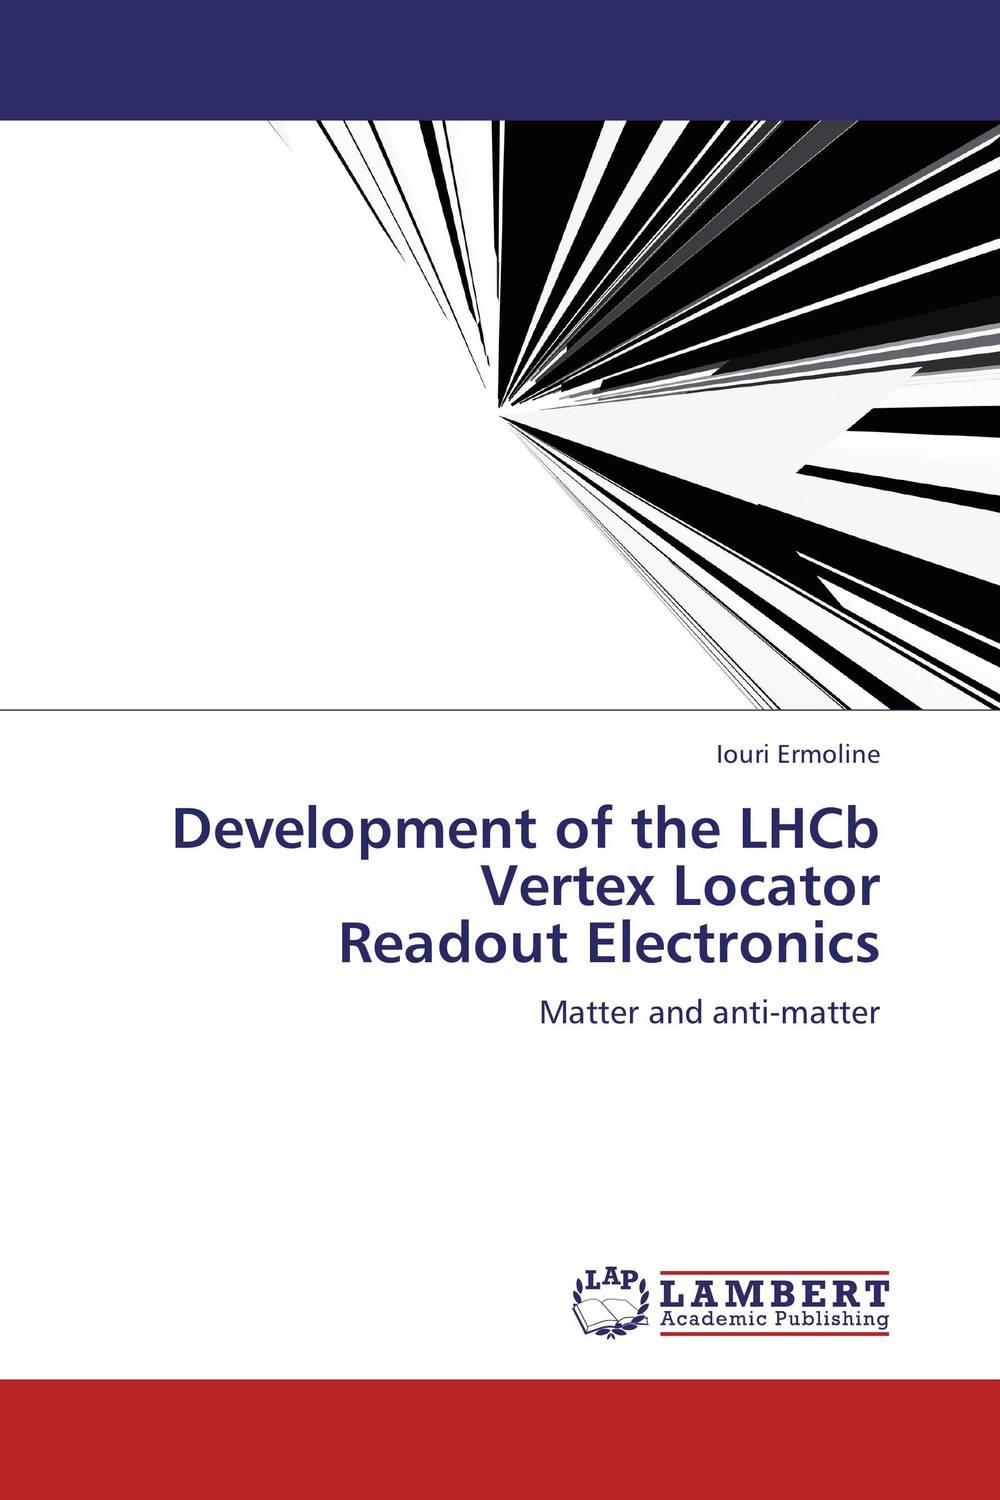 Development of the LHCb Vertex Locator Readout Electronics